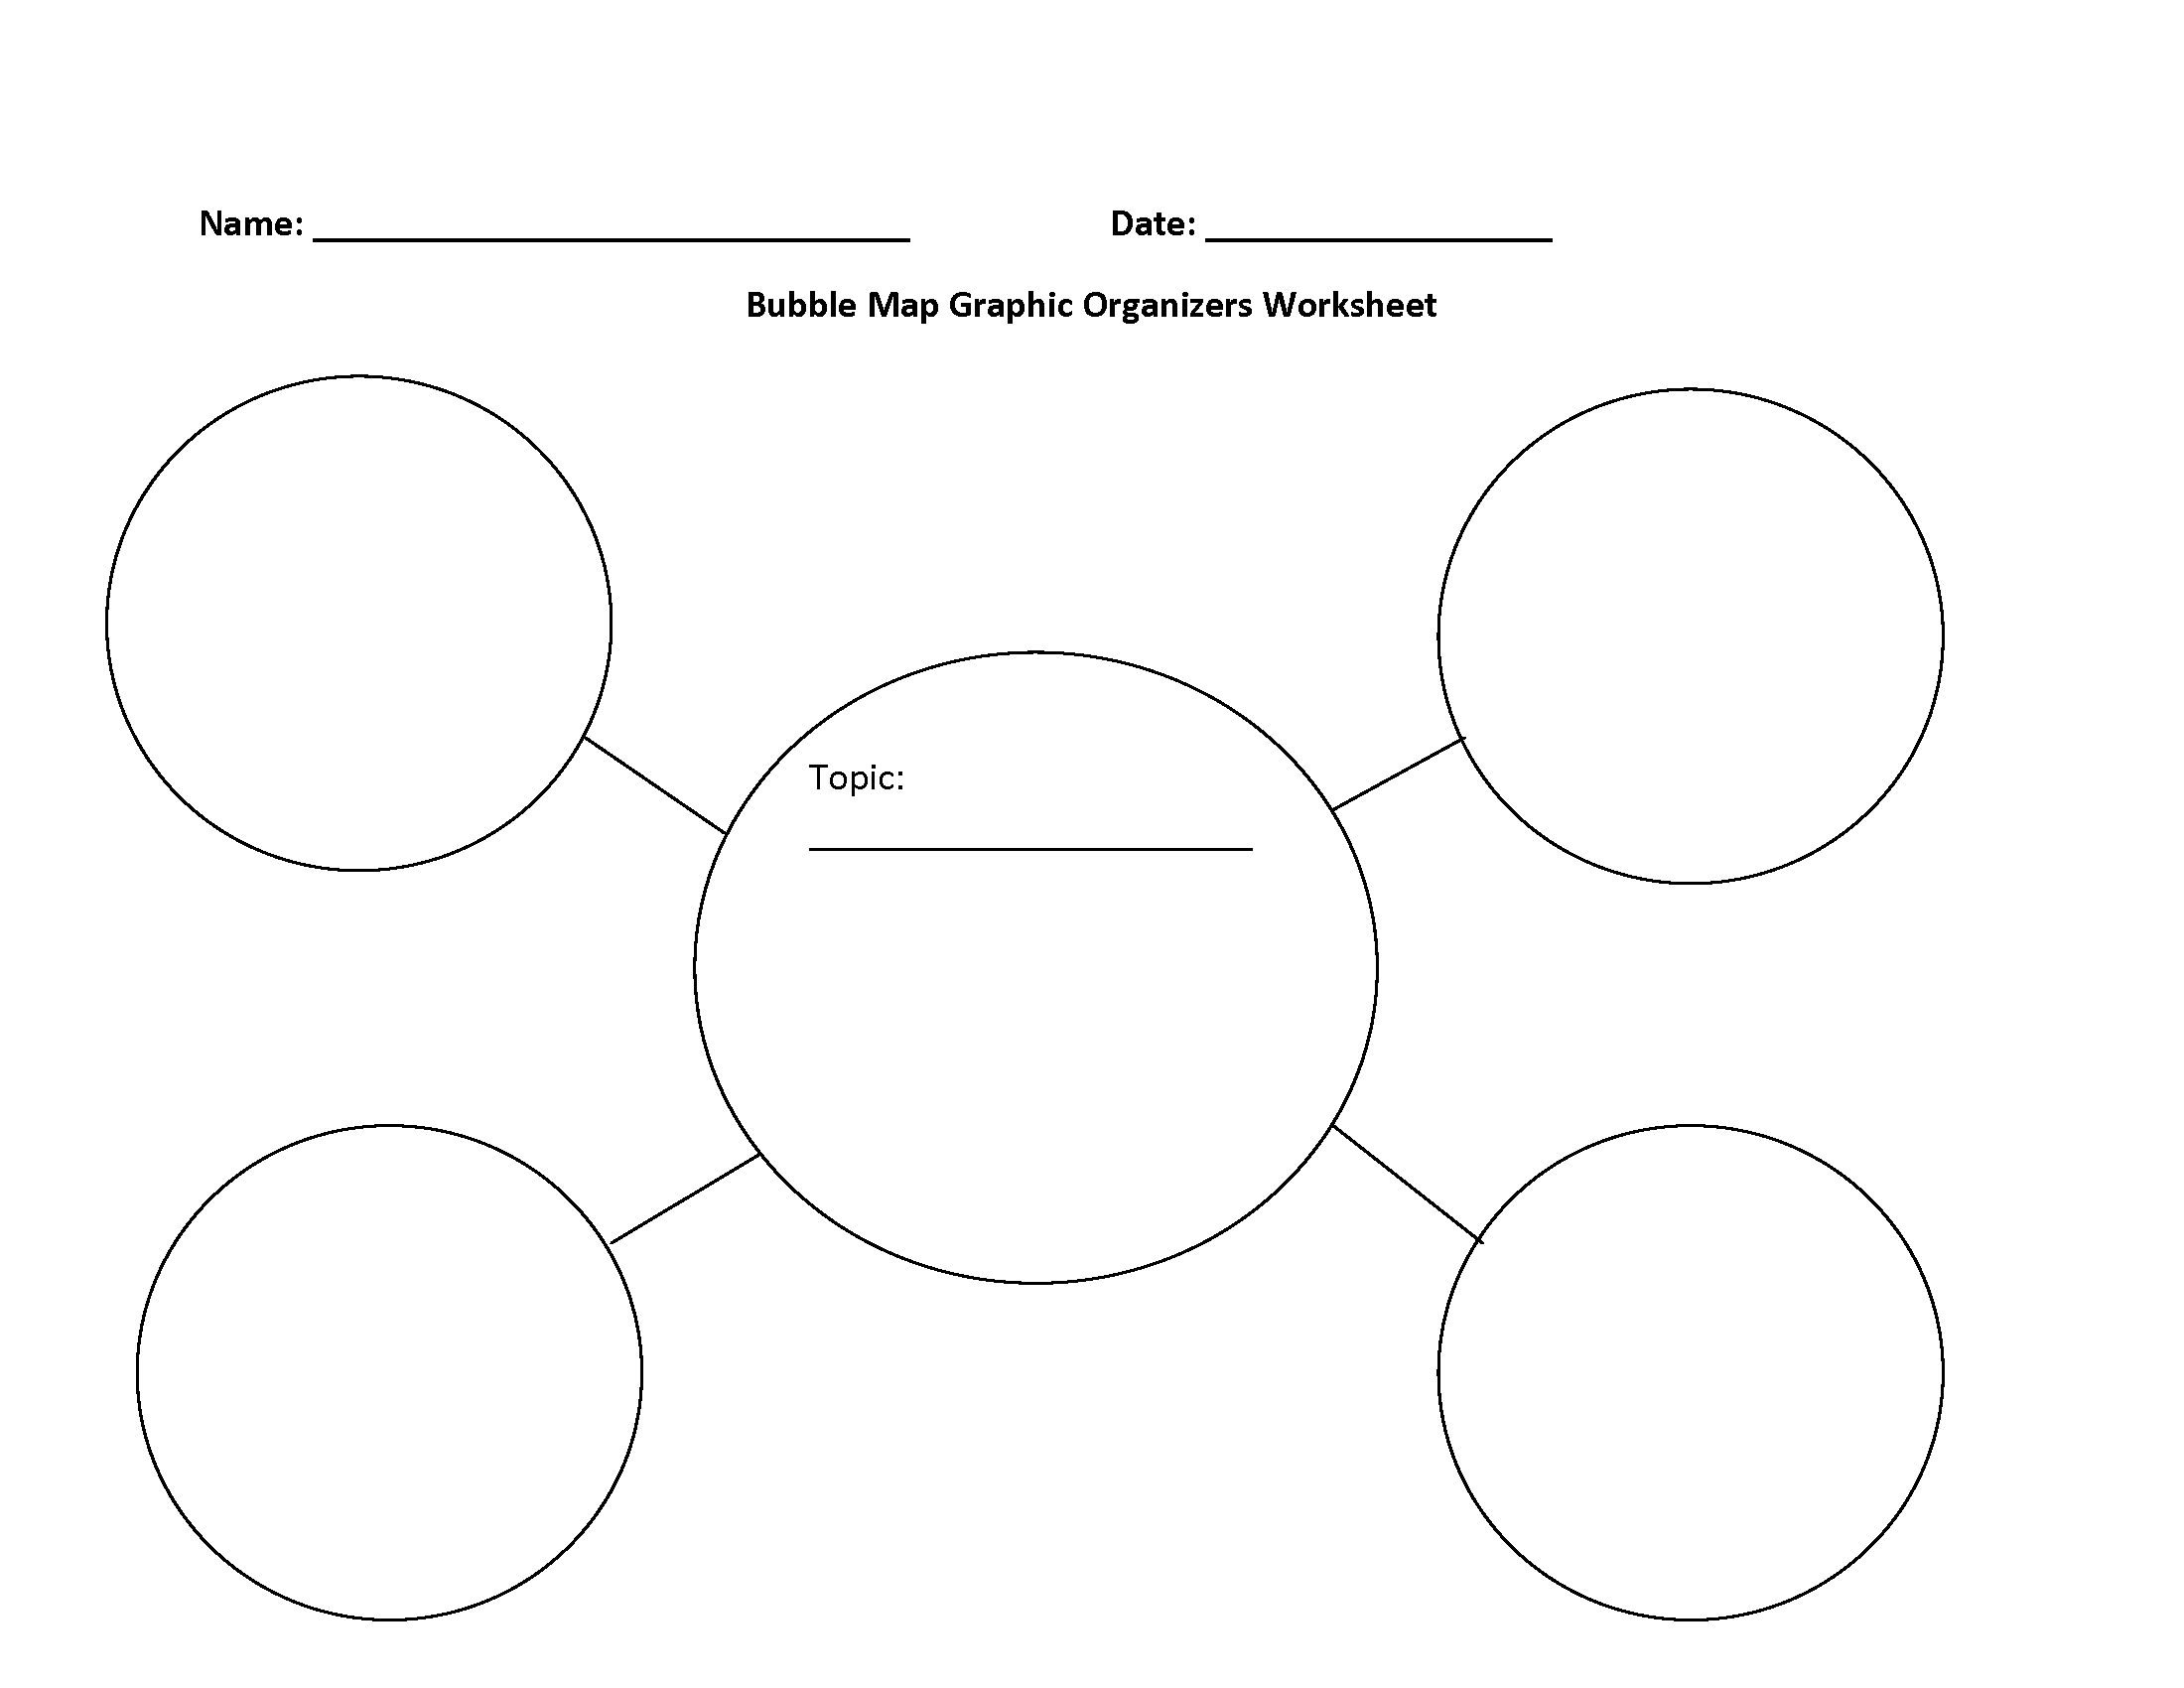 Free Printable Graphic Organizers | Bestprintable231118 - Free Printable Graphic Organizers